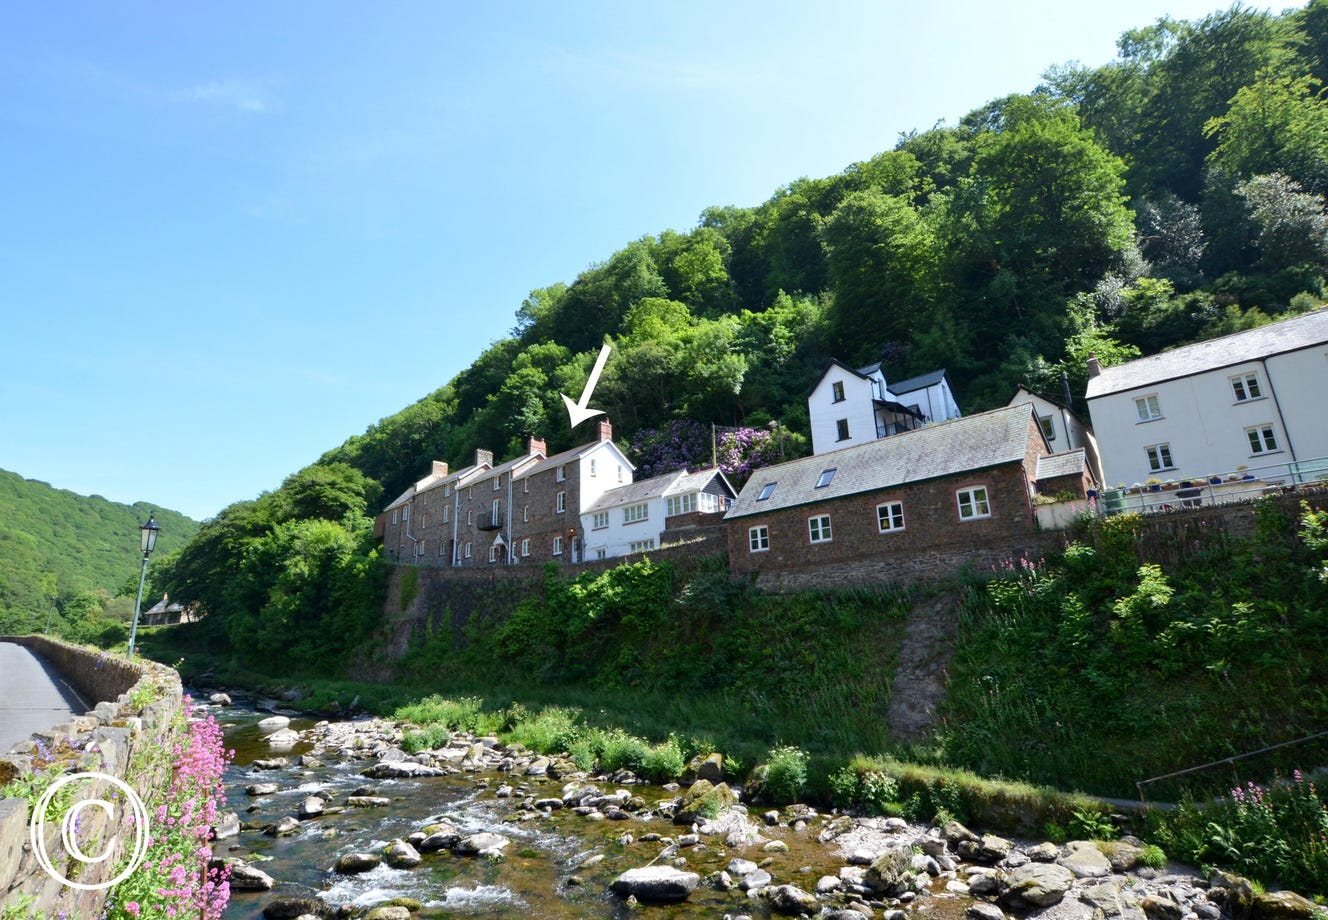 Situated above the East Lyn River this welcoming stone built cottage is in a great position for exploring the outstandingly beautiful Exmoor countryside